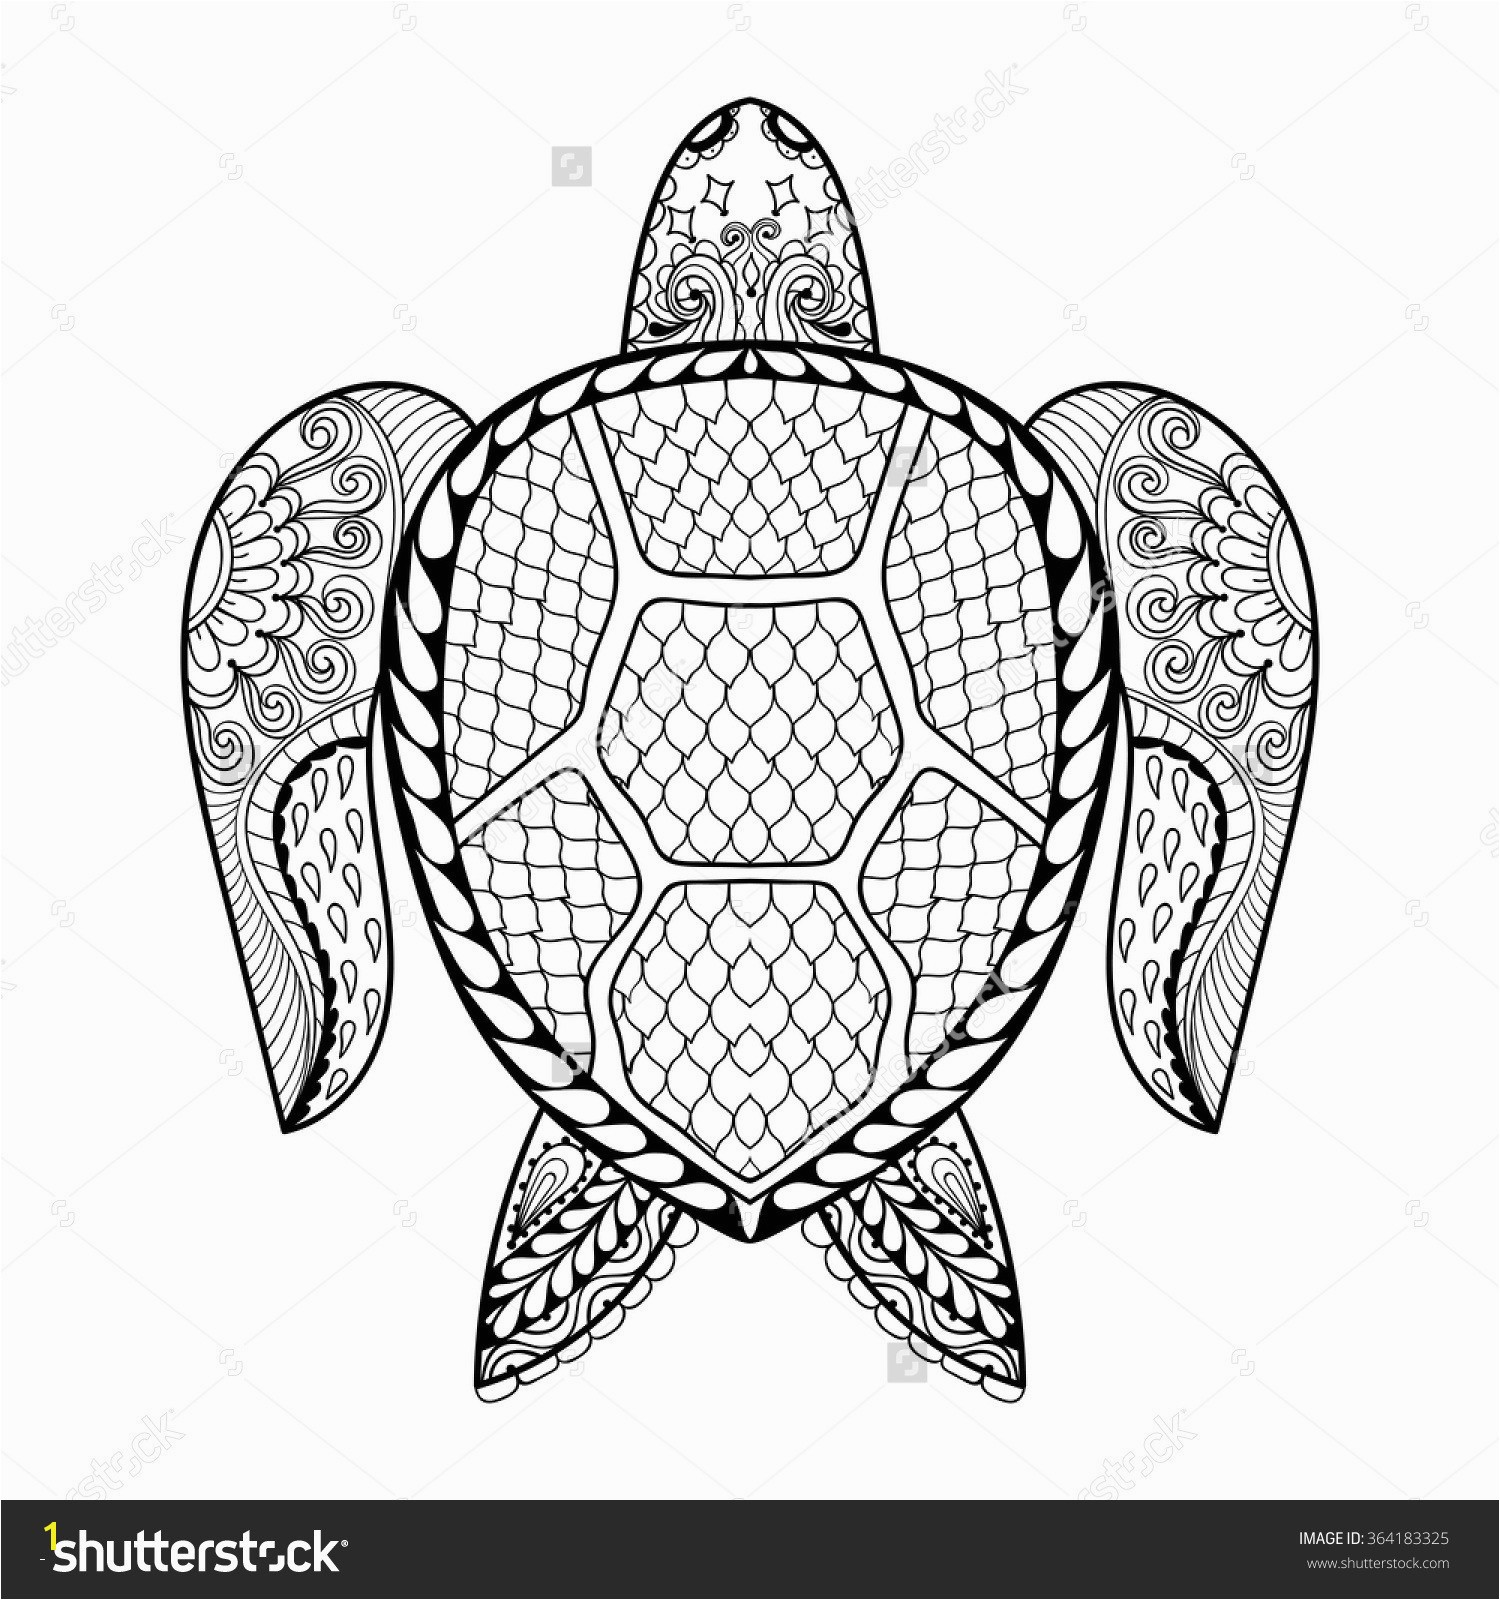 Turtle Mandala Coloring Pages Printable Turtle Coloring Pages for Adults Animal Mandala Coloring Pages New